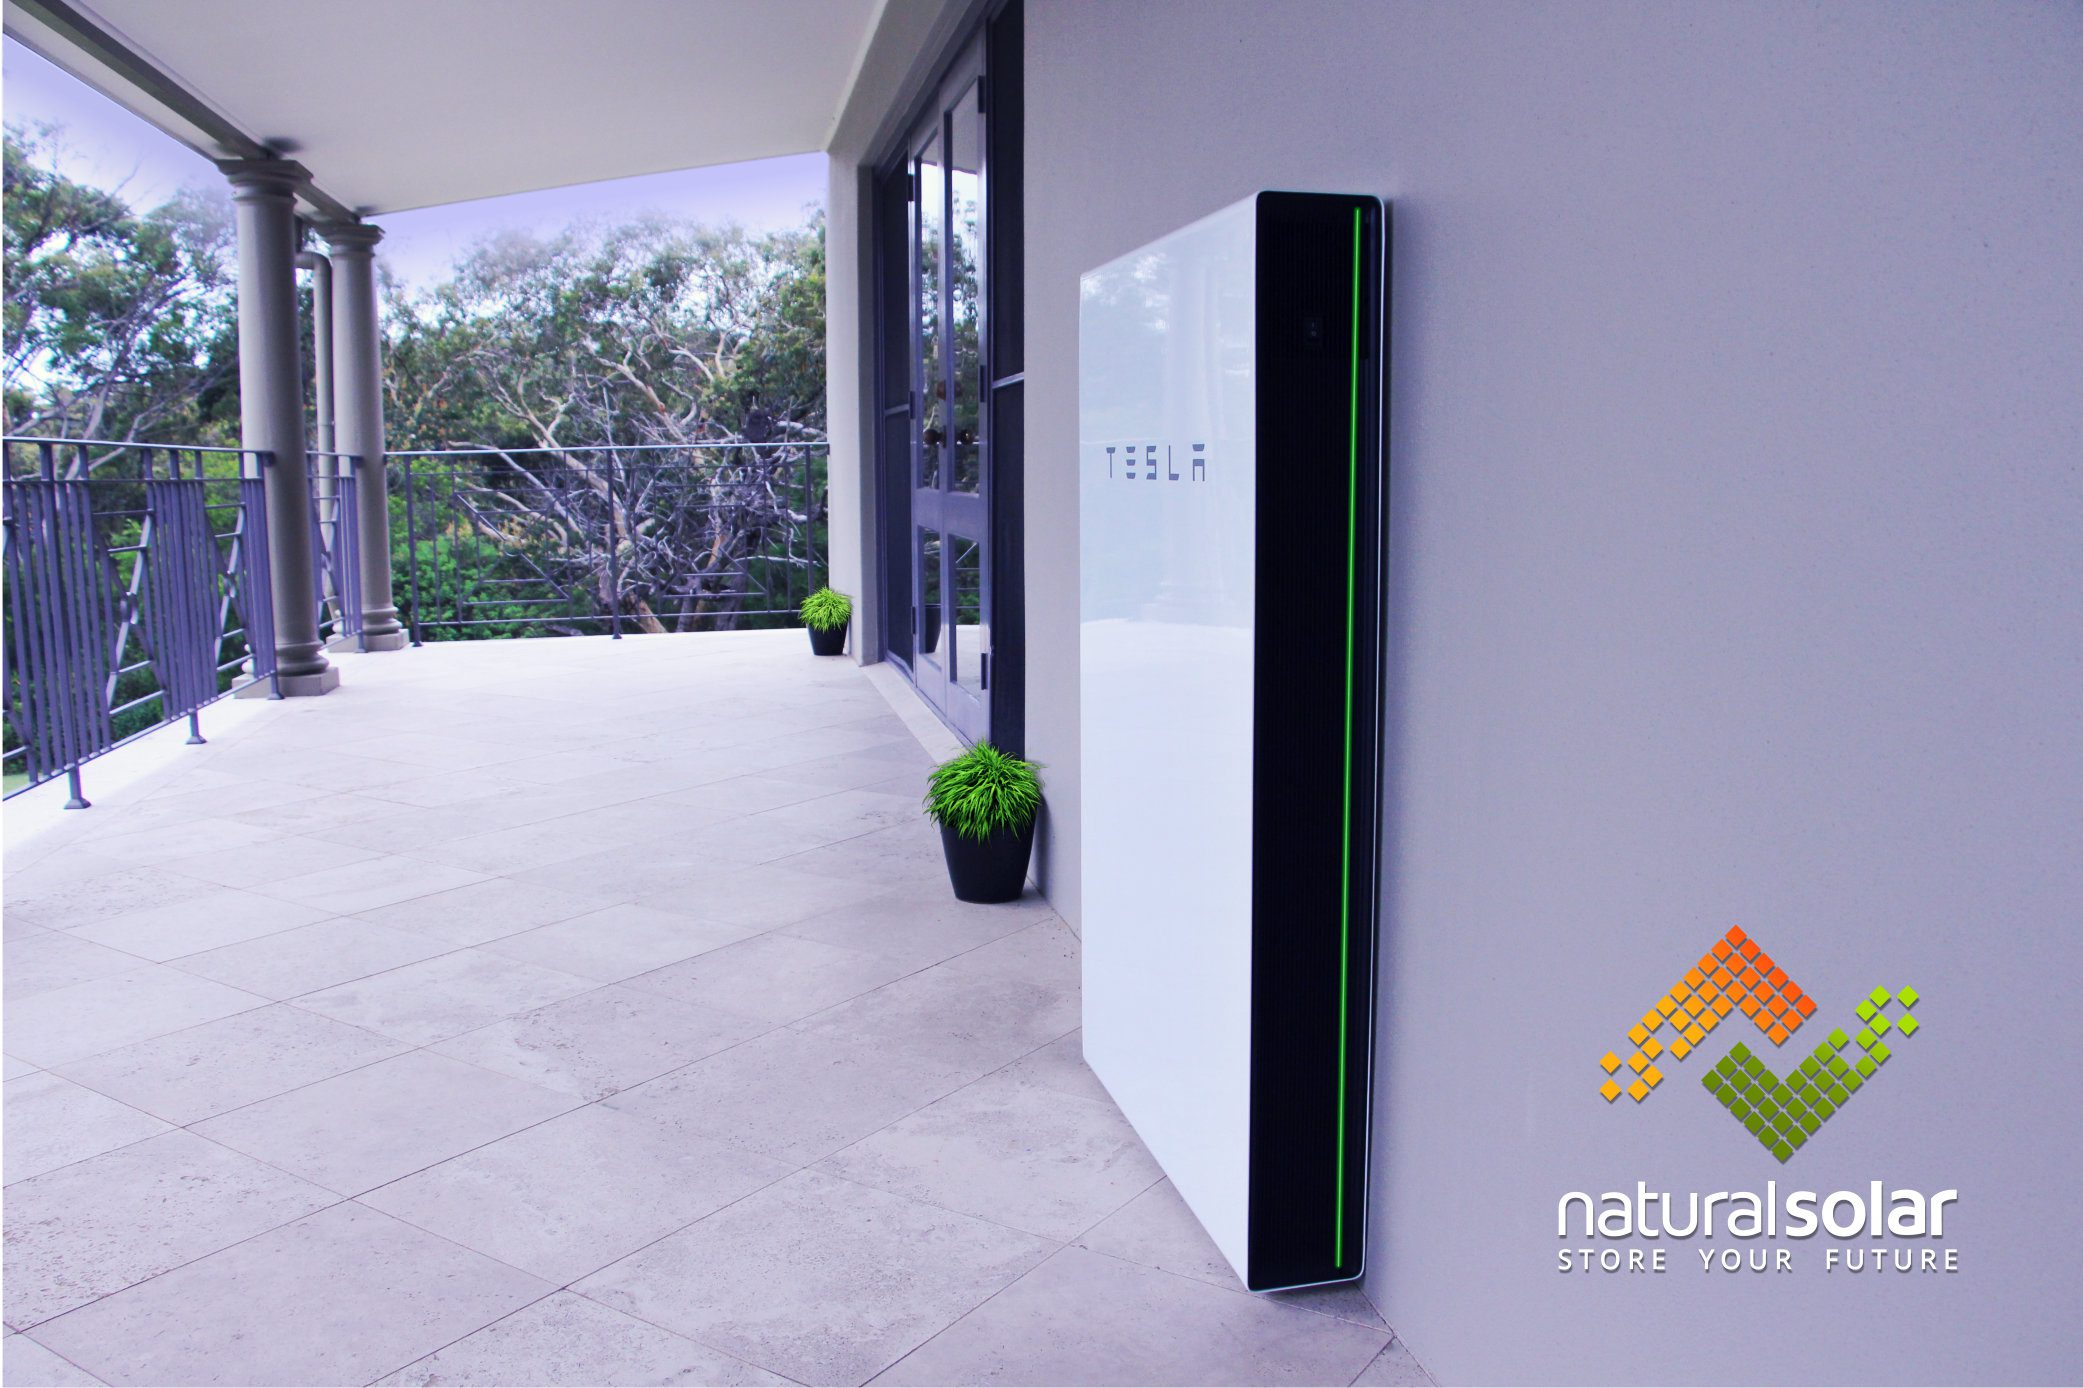 Queensland - Combine solar and Powerwall to power your home or small business